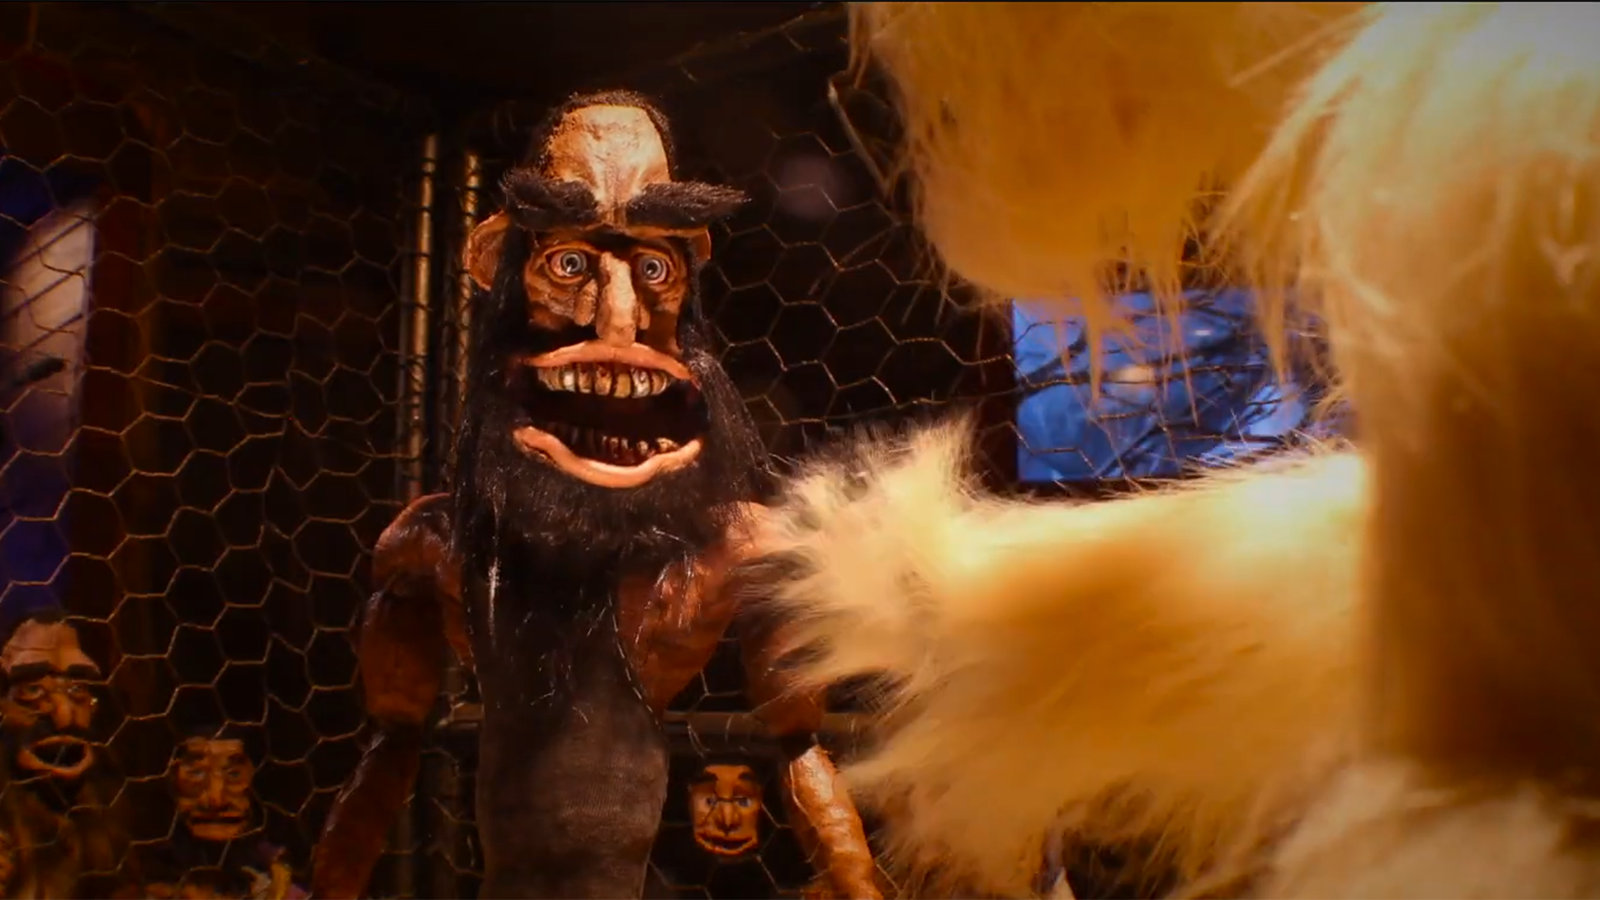 Cage-Fighting With Bears: See Four Stroke Baron's Insane New Animated Video